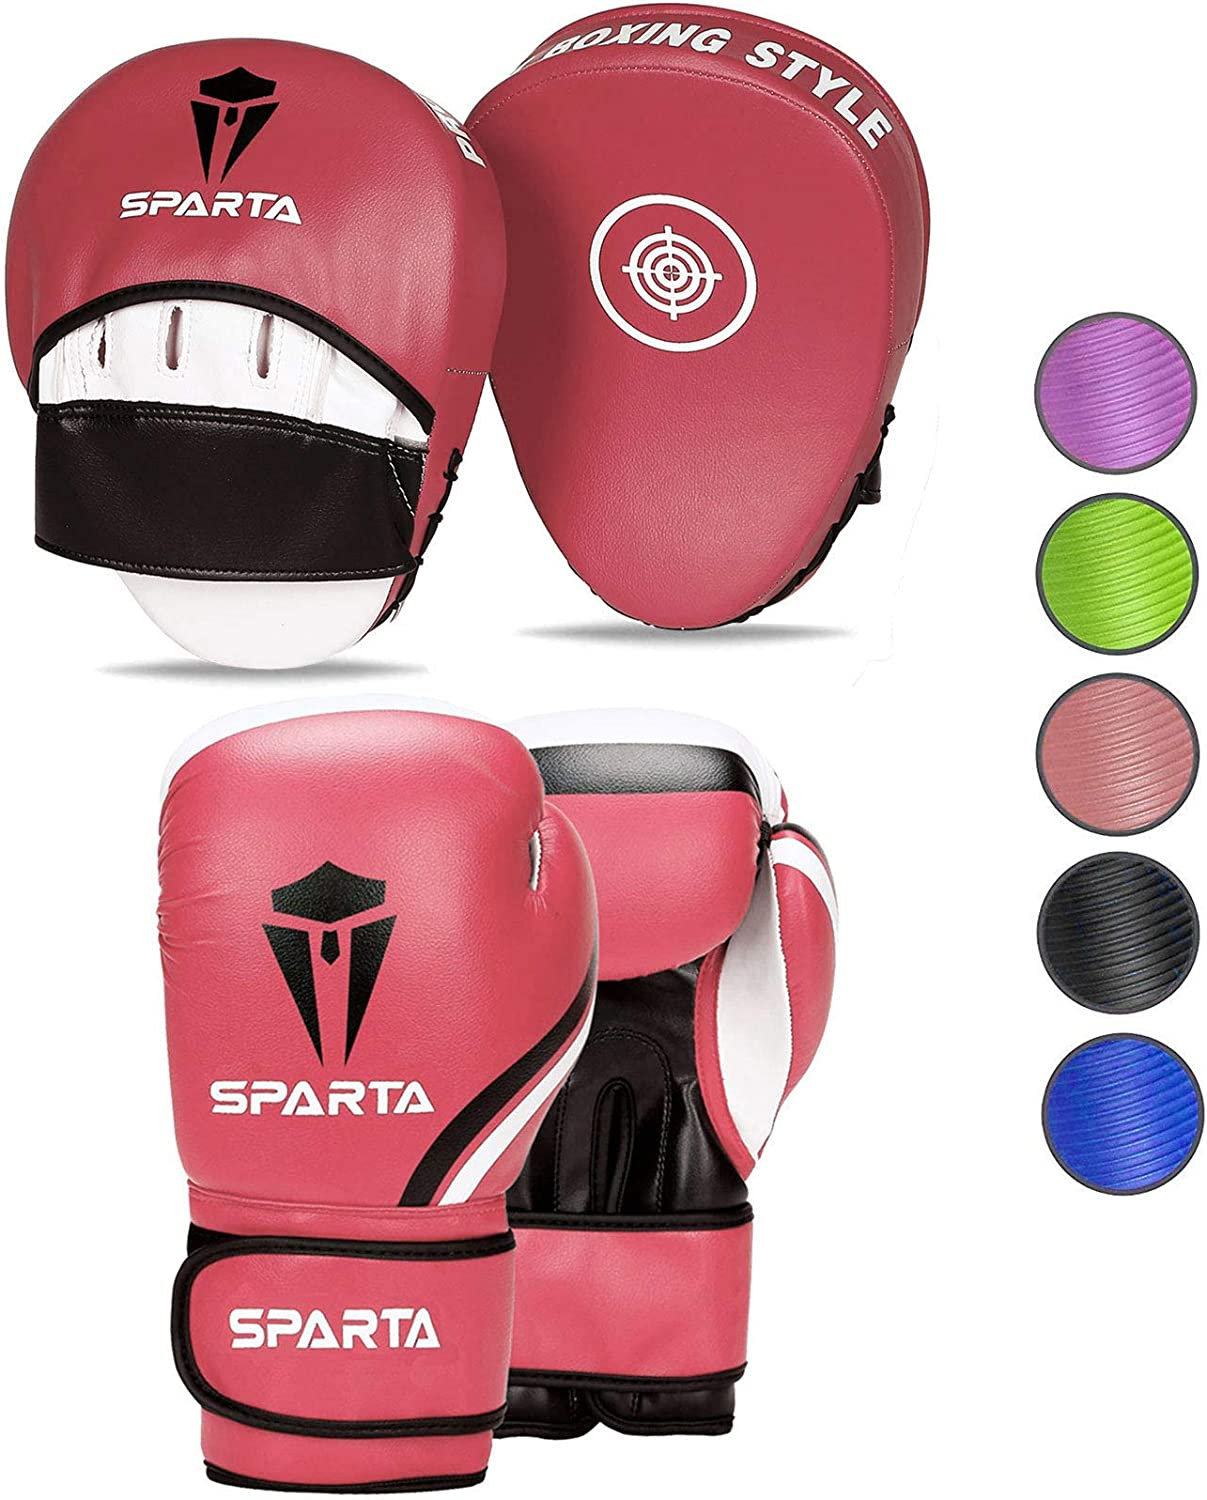 Boxing gloves and pads set Focus Punch Mitts MMA Training Sparring Hook and Jab strike target with Punching Gloves